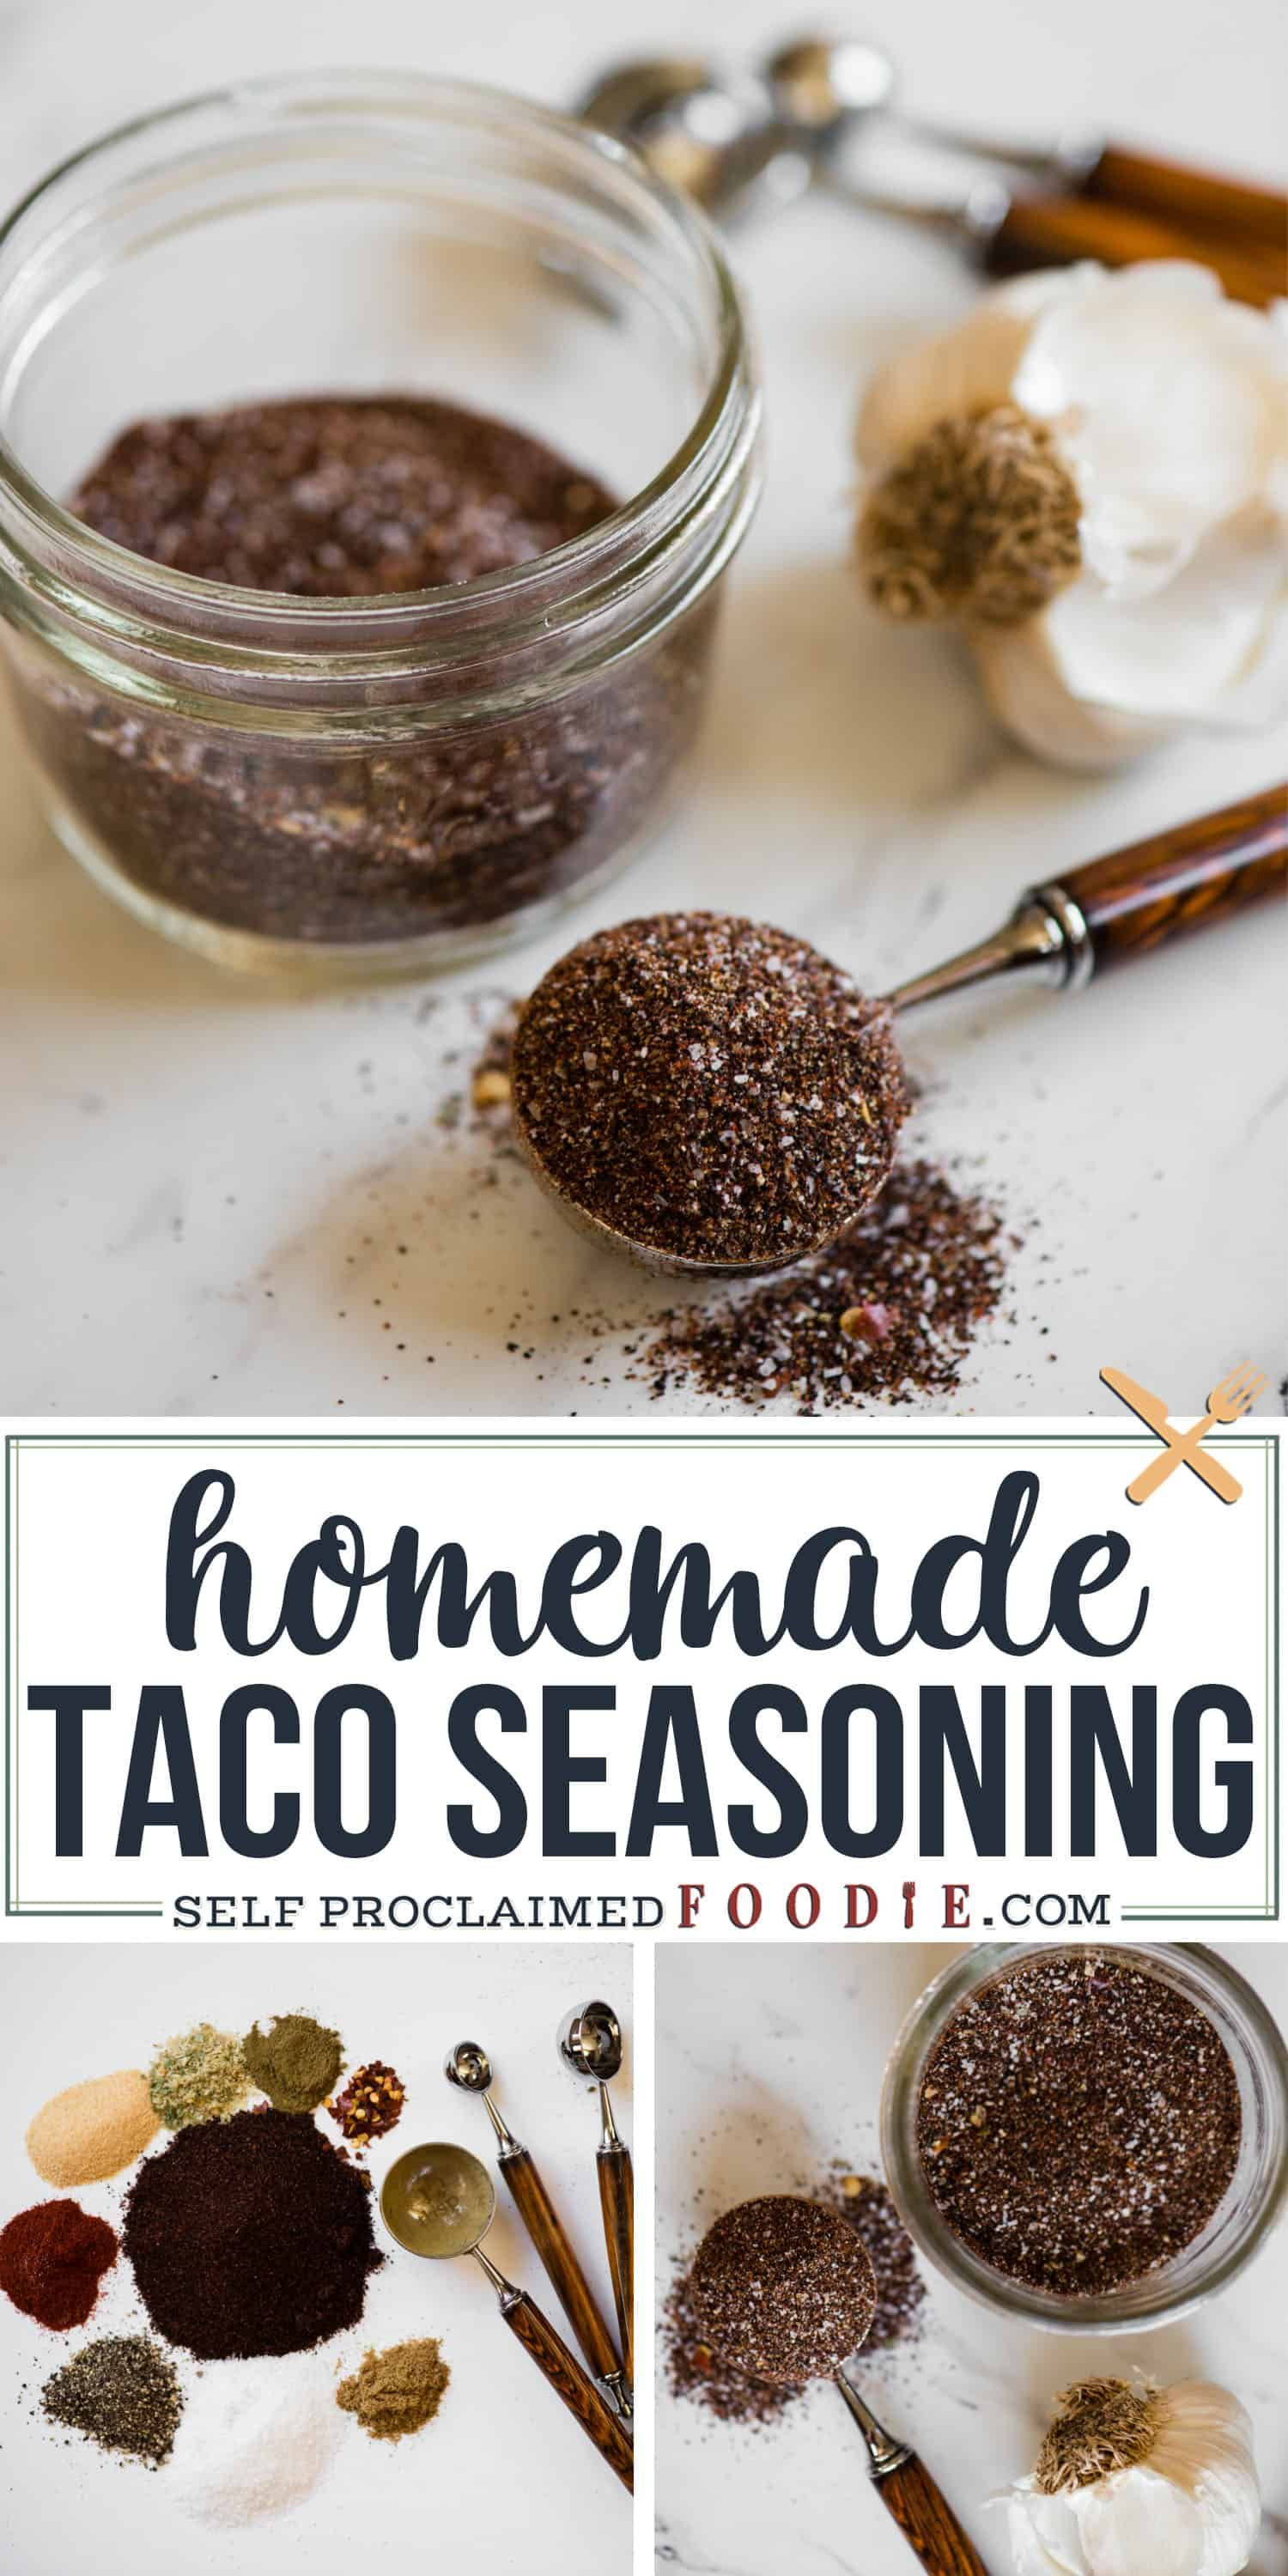 Homemade Taco Seasoning is so easy to make with ingredients you probably already have in your pantry! Once you make your own taco seasoning you'll love it! #diytacoseasoning